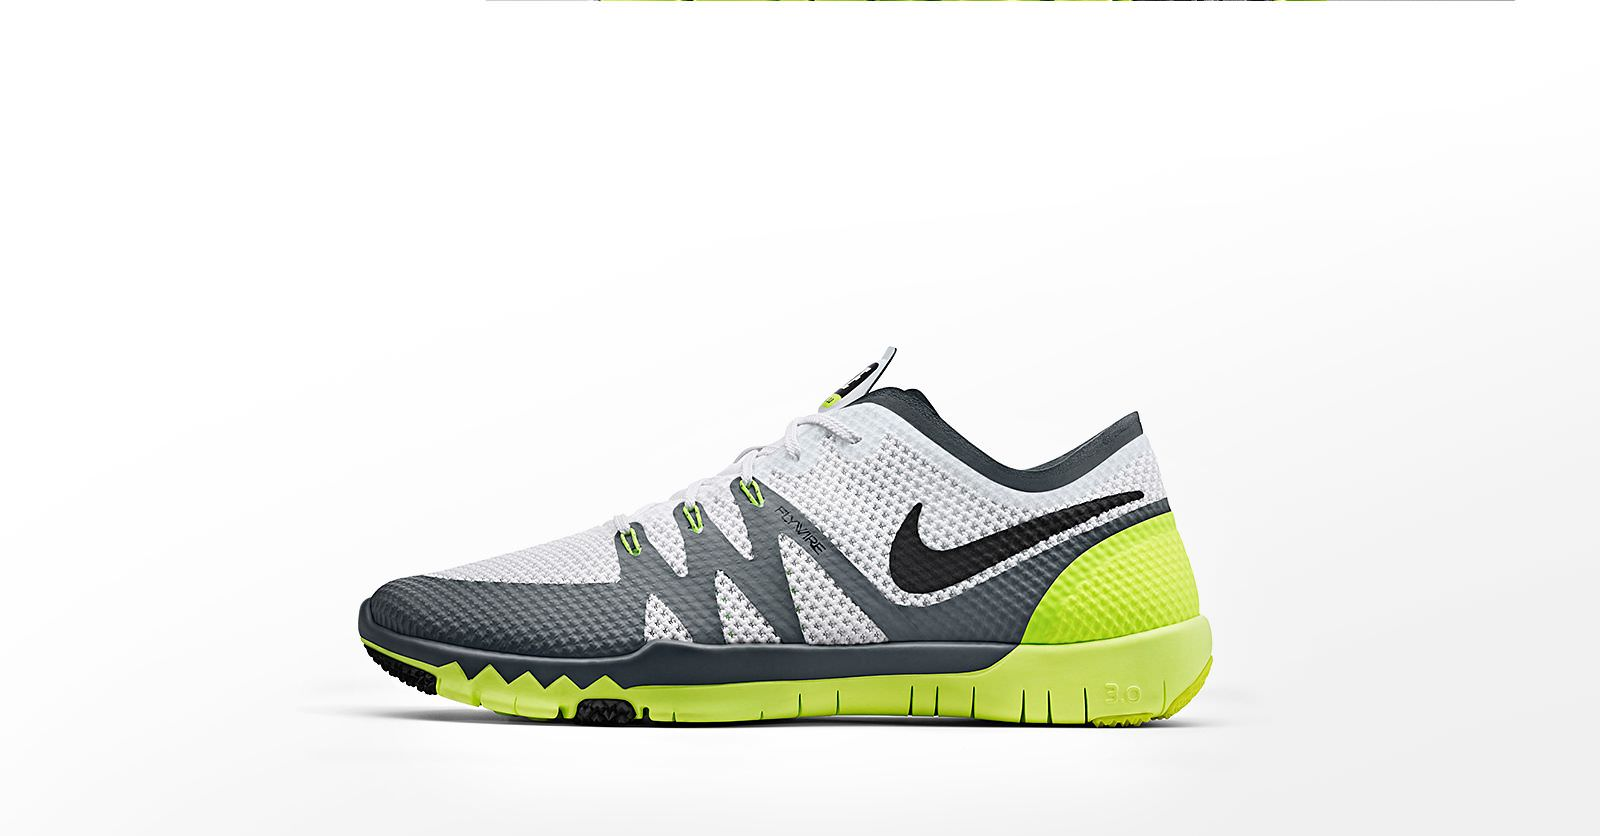 closeout is nike free trainer 3.0 good for laufen b1acd 92c31